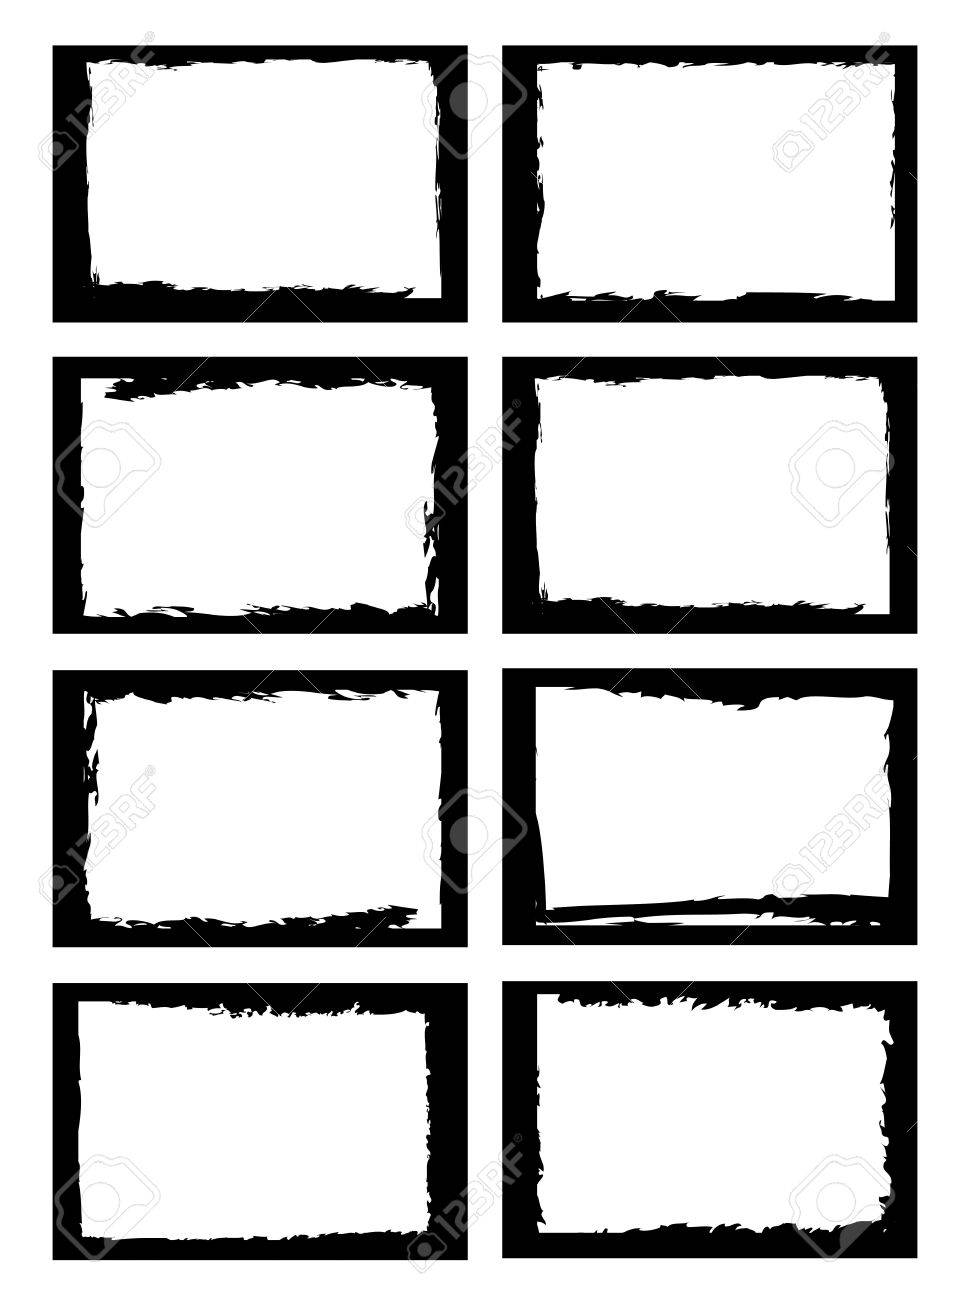 a set of grunge style border, use for photo frame or other usage. Stock Vector - 10598975